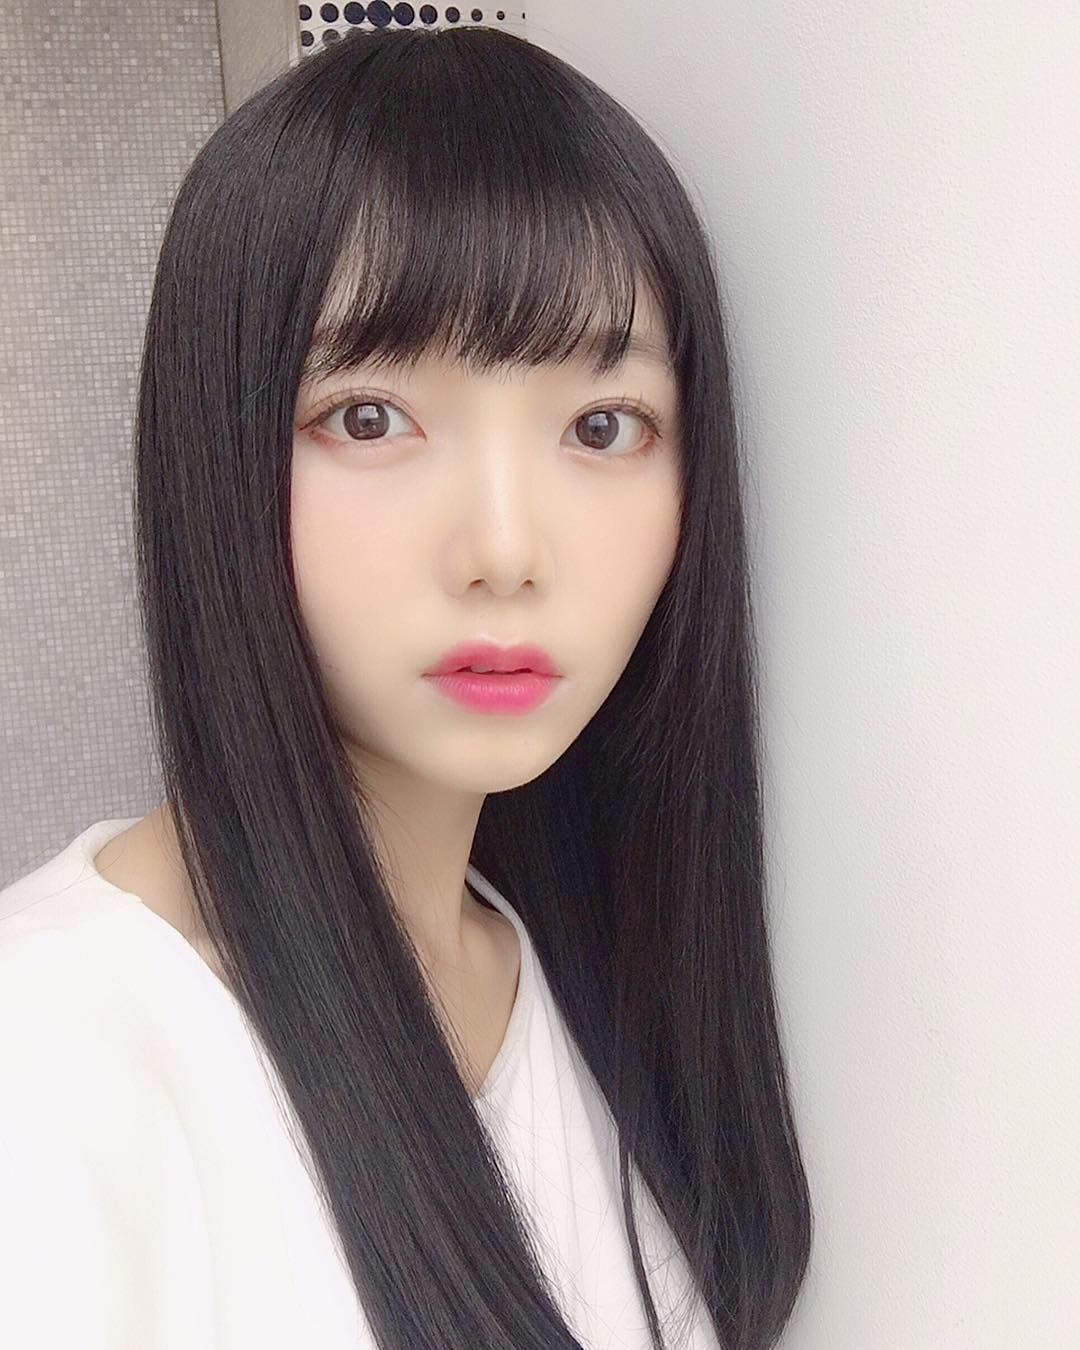 Japanese Hairstyles Female 2019 Easy Most Remarkable Japanese Hairstyles 2019 Hairstyles Womens Hairstyles Japanese Hairstyle Hair Styles